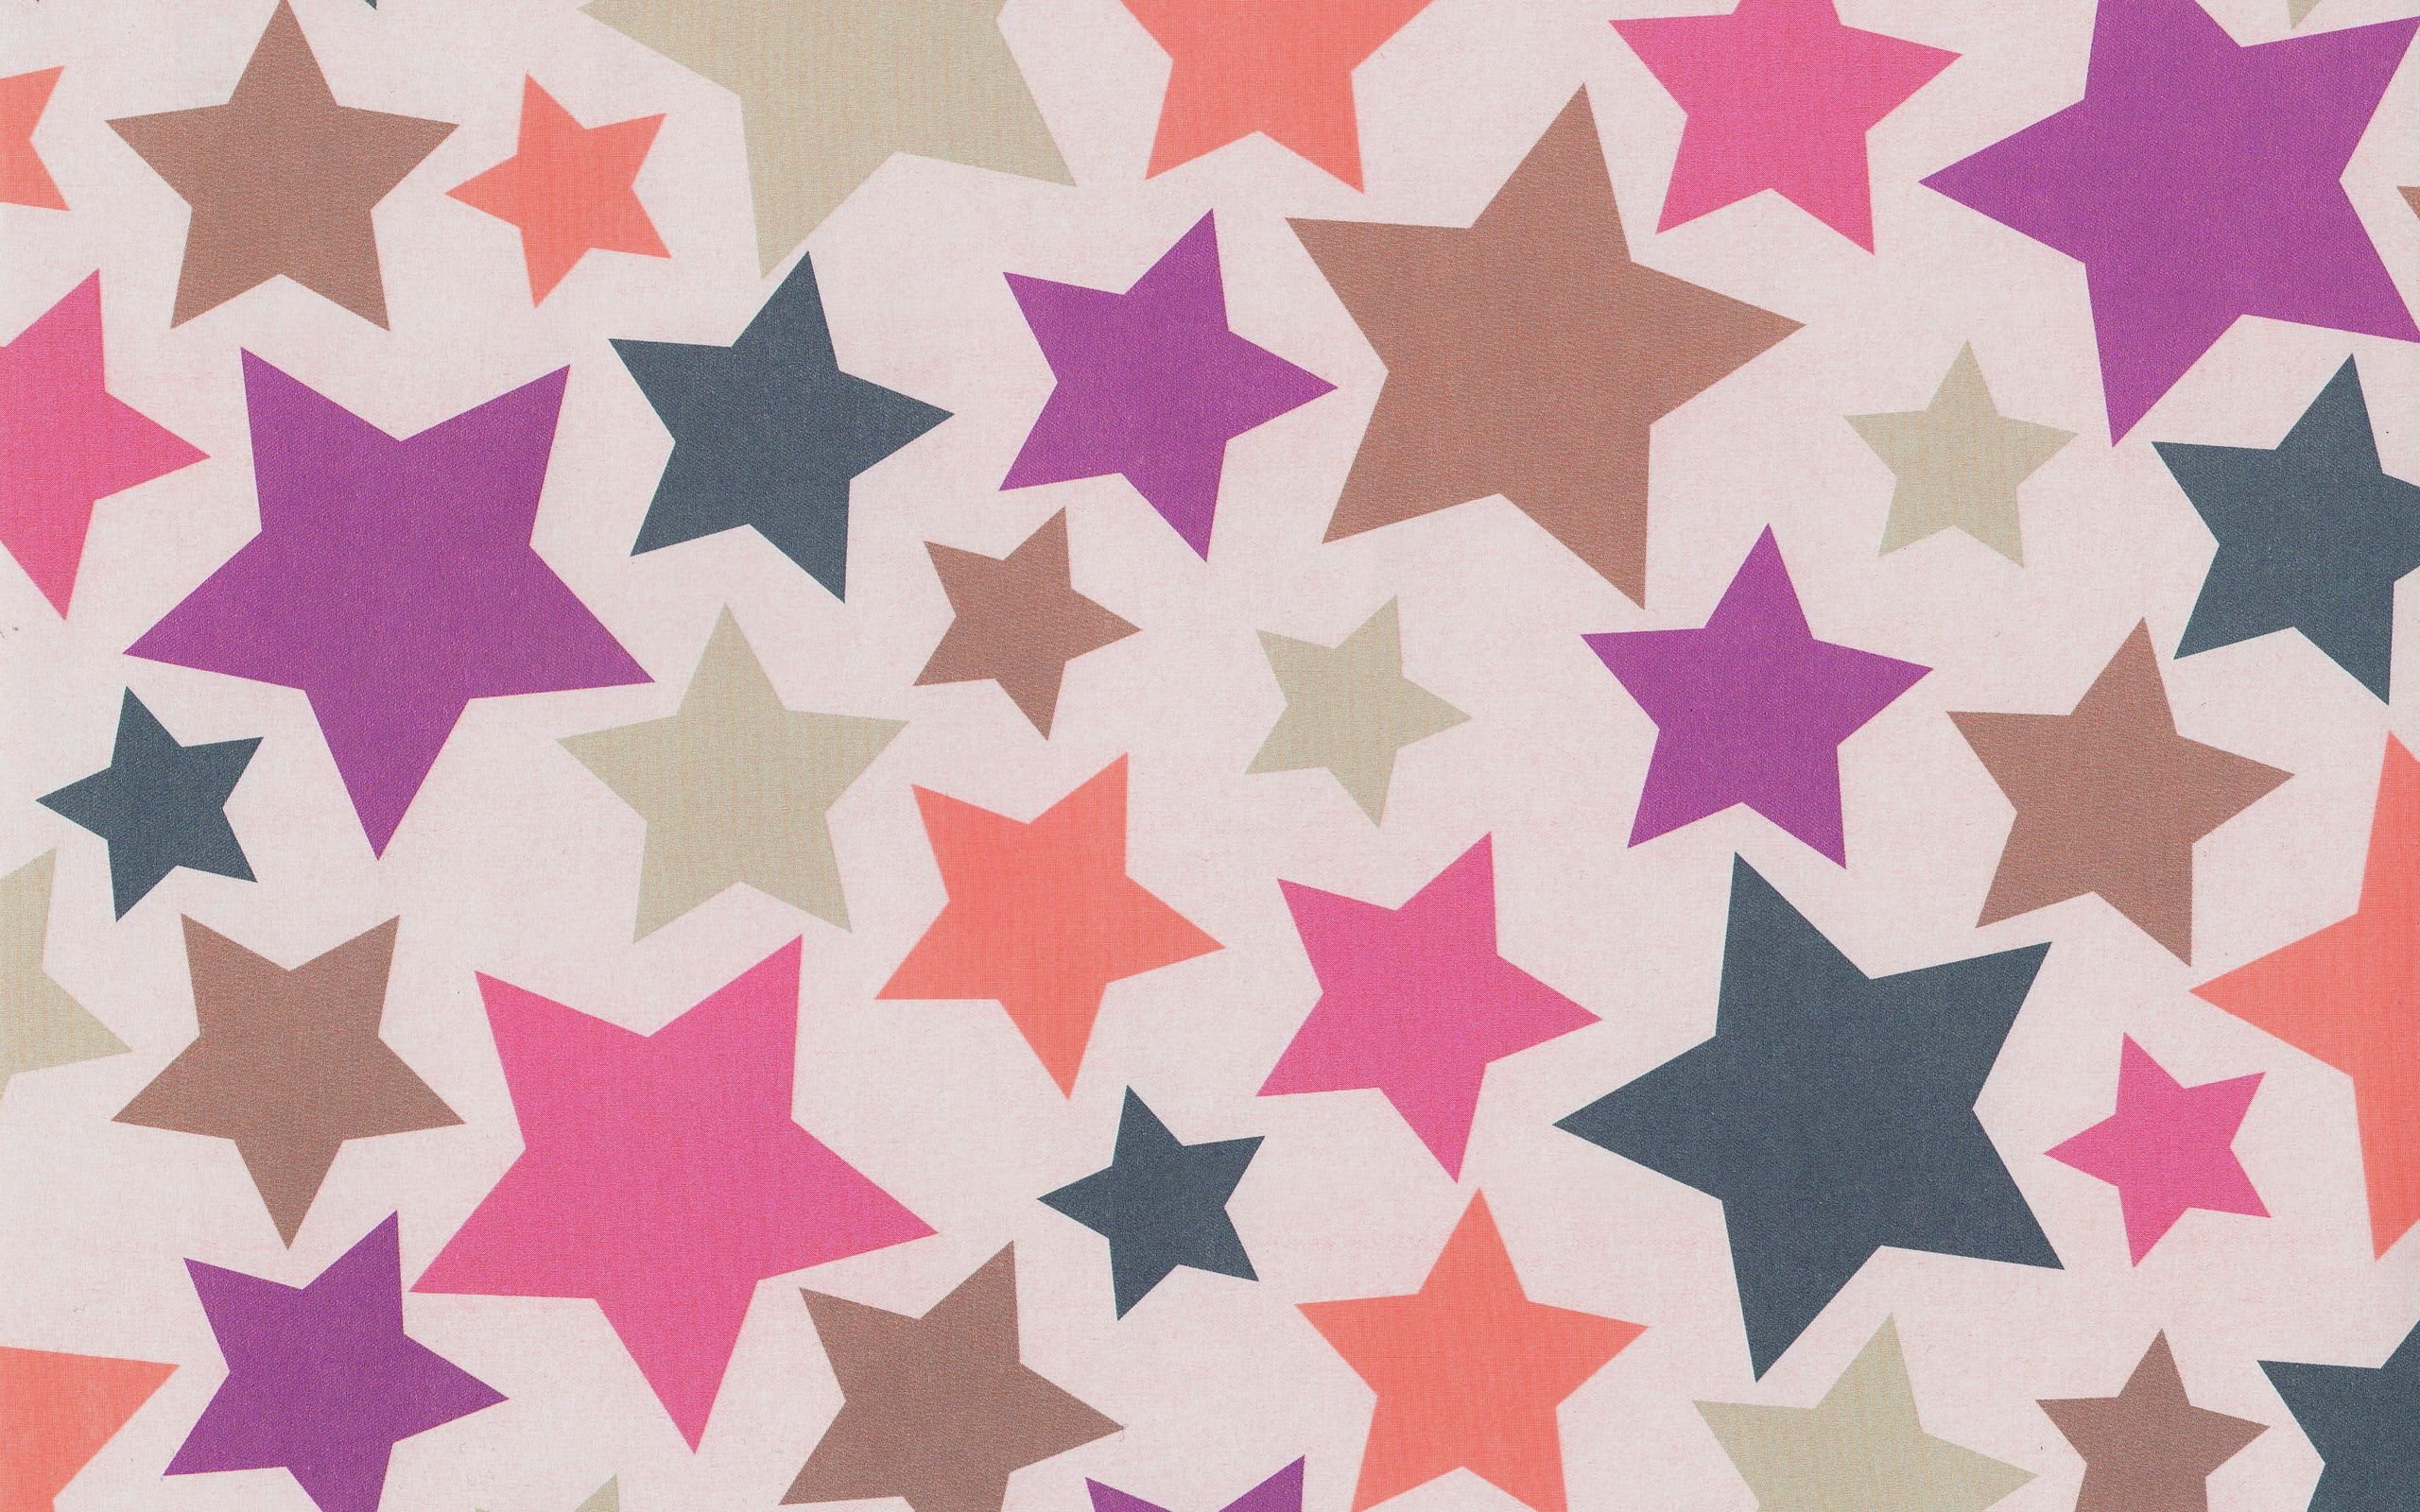 Colorful Stars Art Wallpapers - http://hdwallpapersf.com/colorful-stars-art-wallpapers